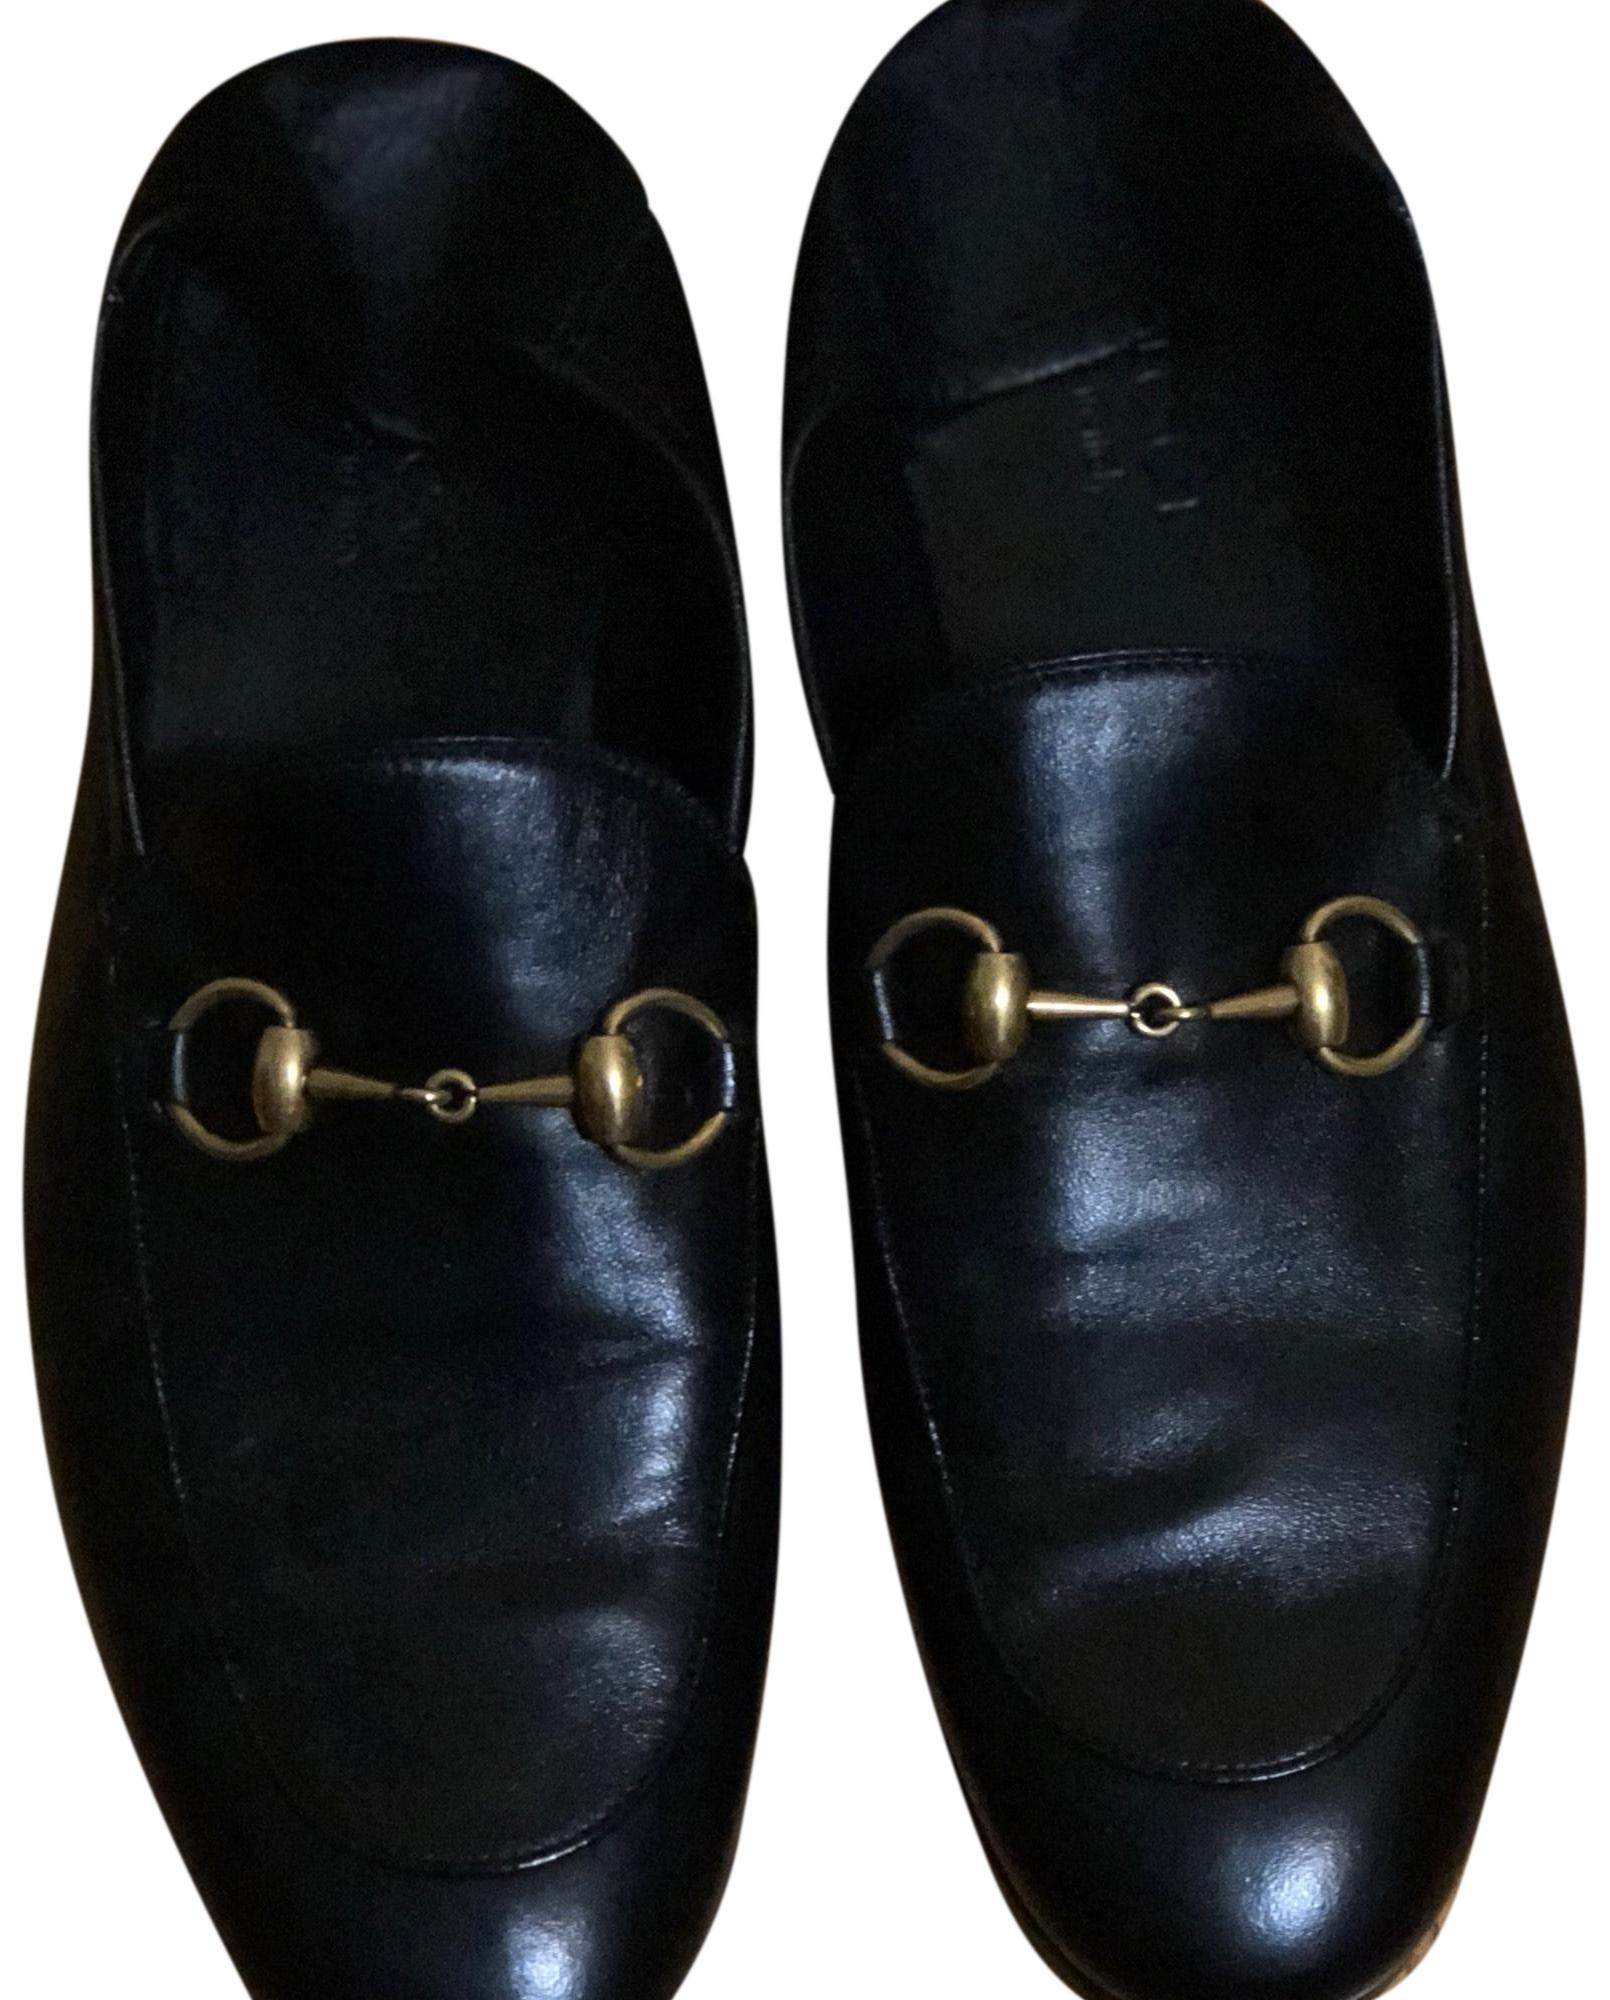 Black Leather with Gold Horsebit Soft Bit-strap Loafers Flats Size US 7 Regular (M, B)